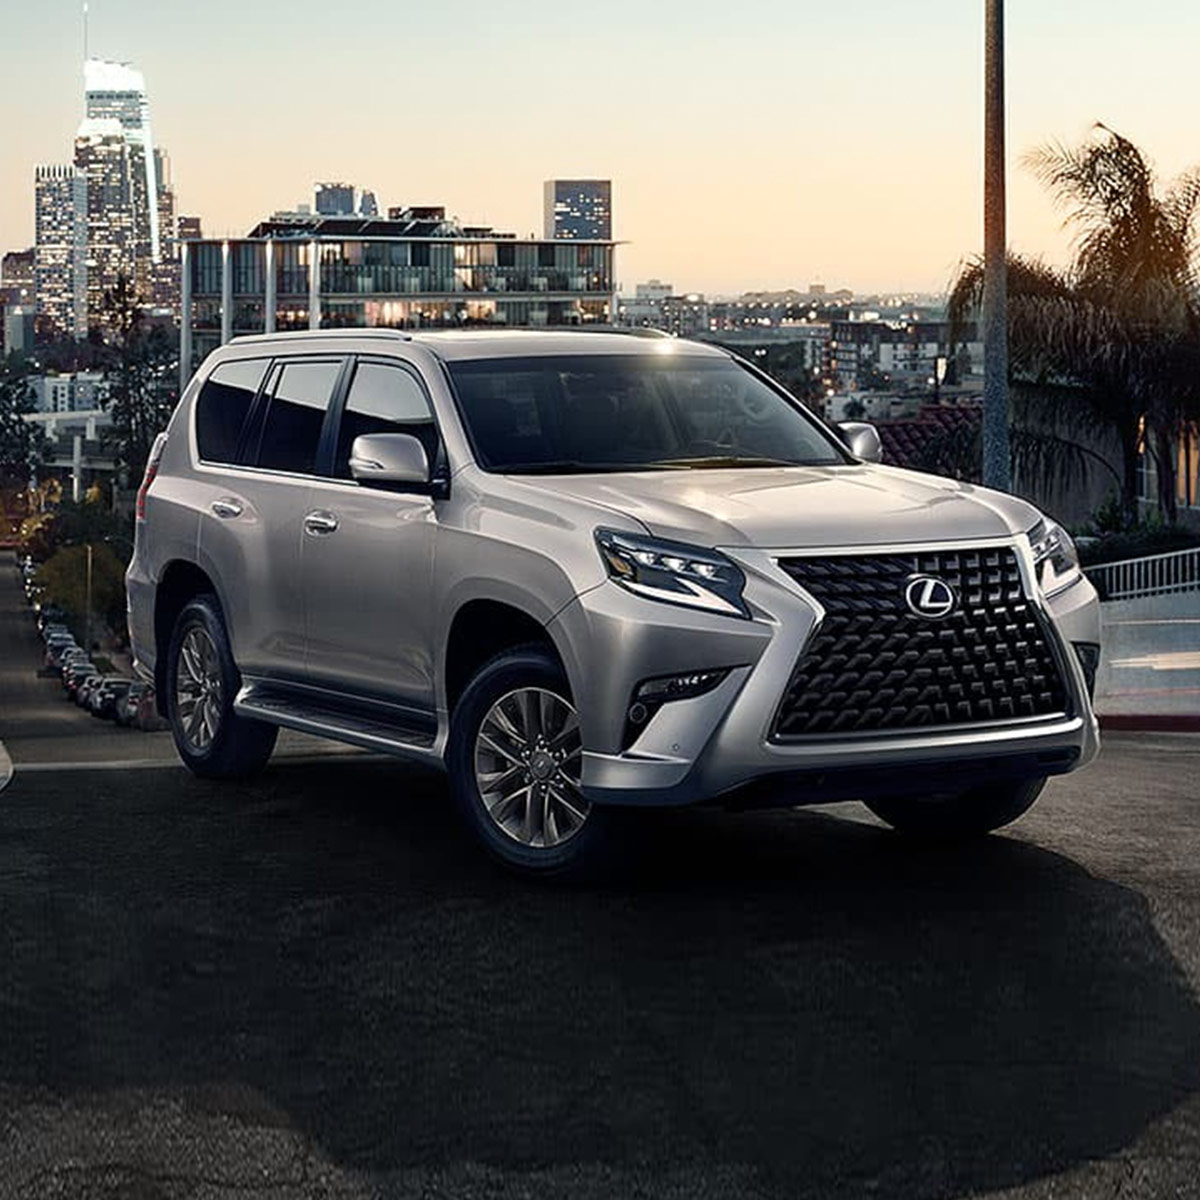 side profile of lexus GX suv in silver color driving on a hill road with city buildings on the horizon